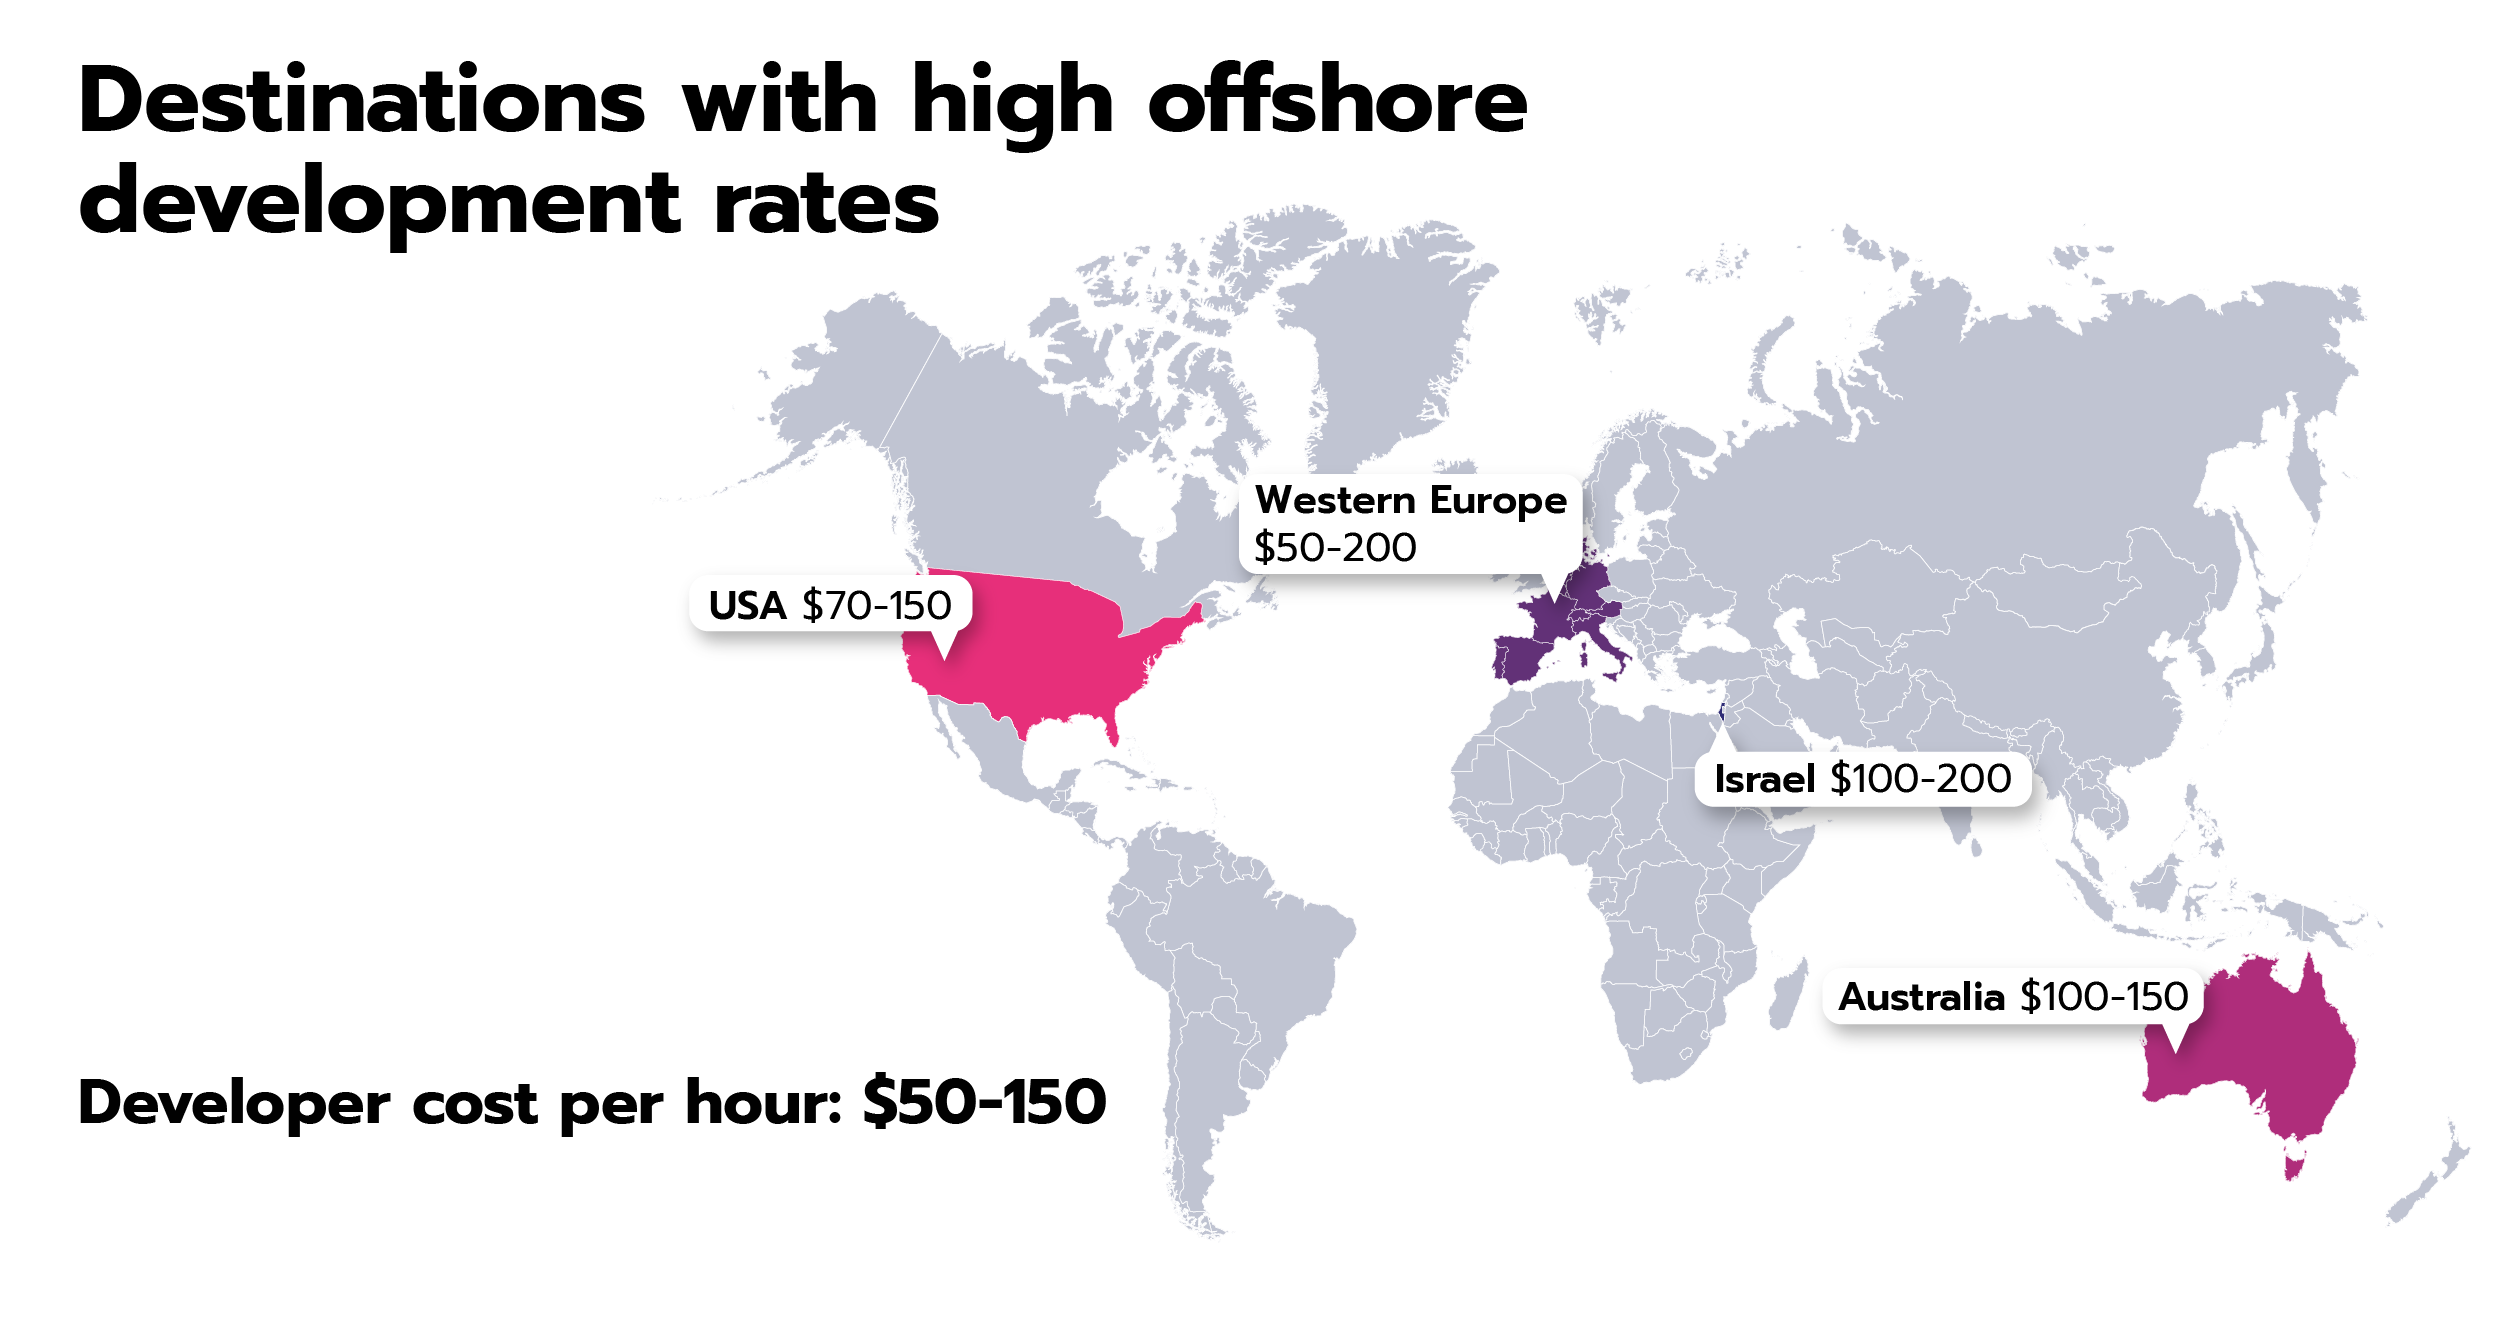 Destinations with high offshore development rates: the US, Western Europe, Australia, Israel.